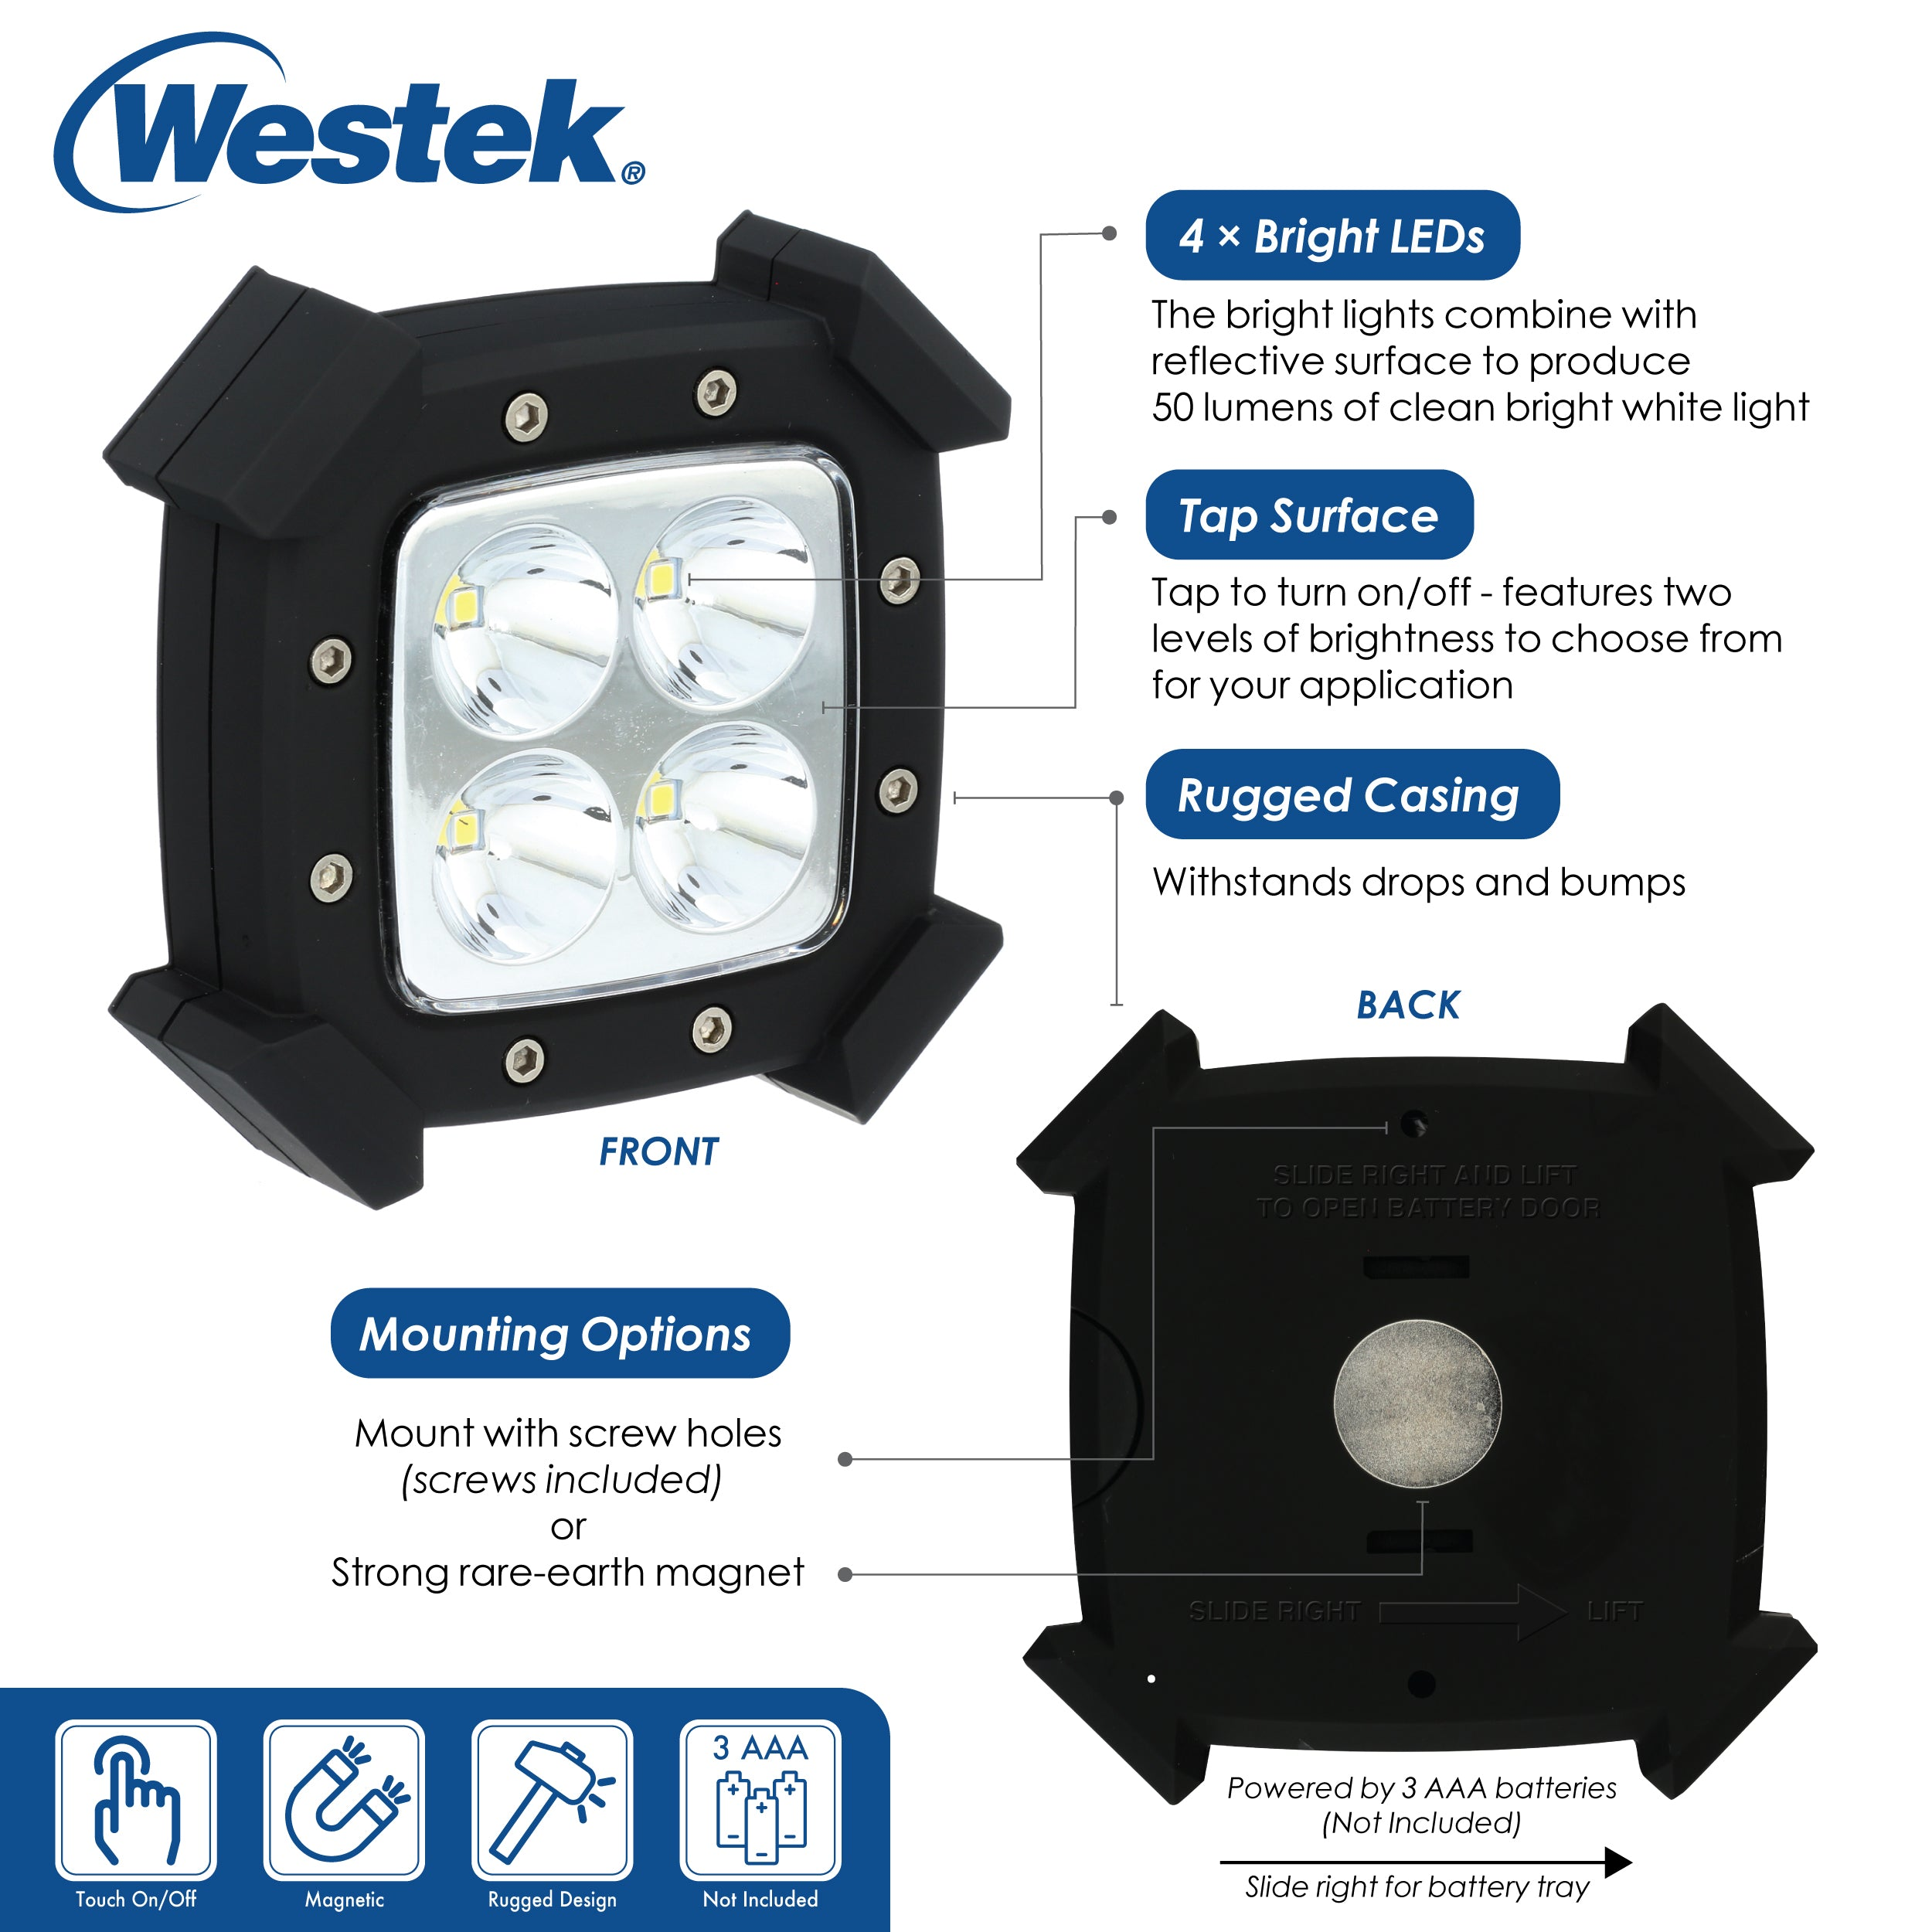 LED Rugged Puck | LW2002B